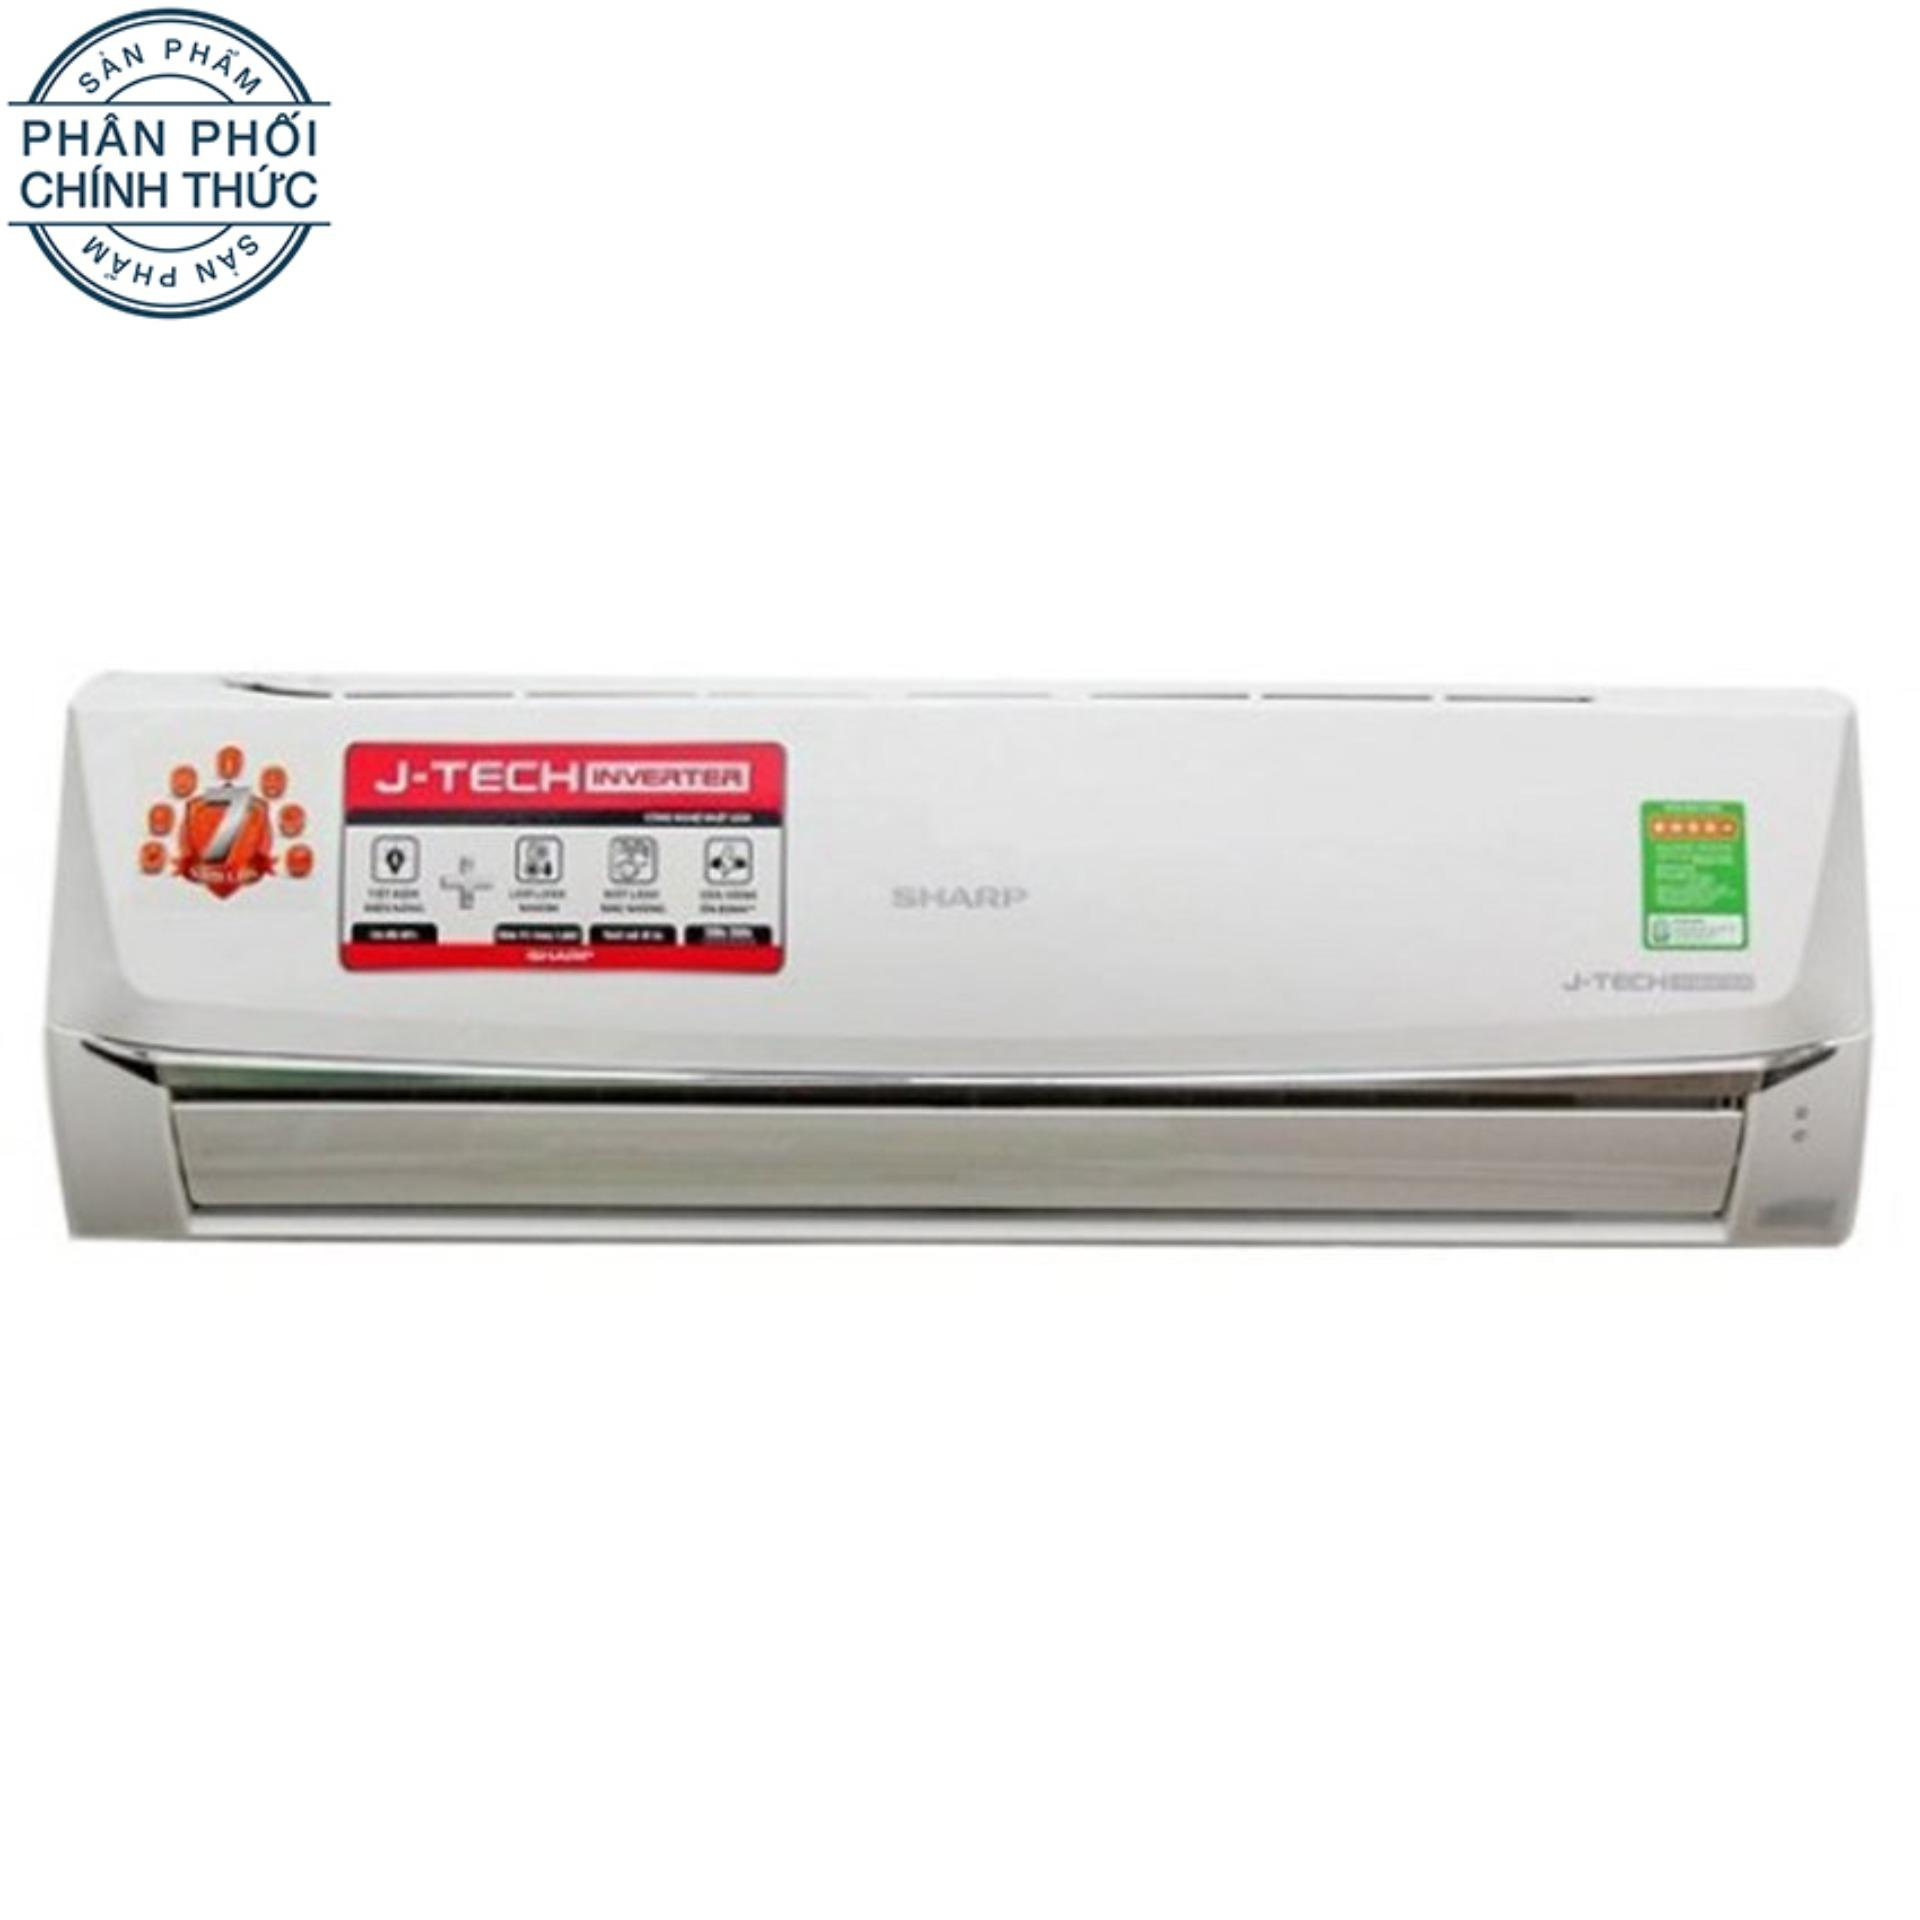 May Lạnh Sharp Super Inverter Ah X9Sew 1Hp Sharp Chiết Khấu 50